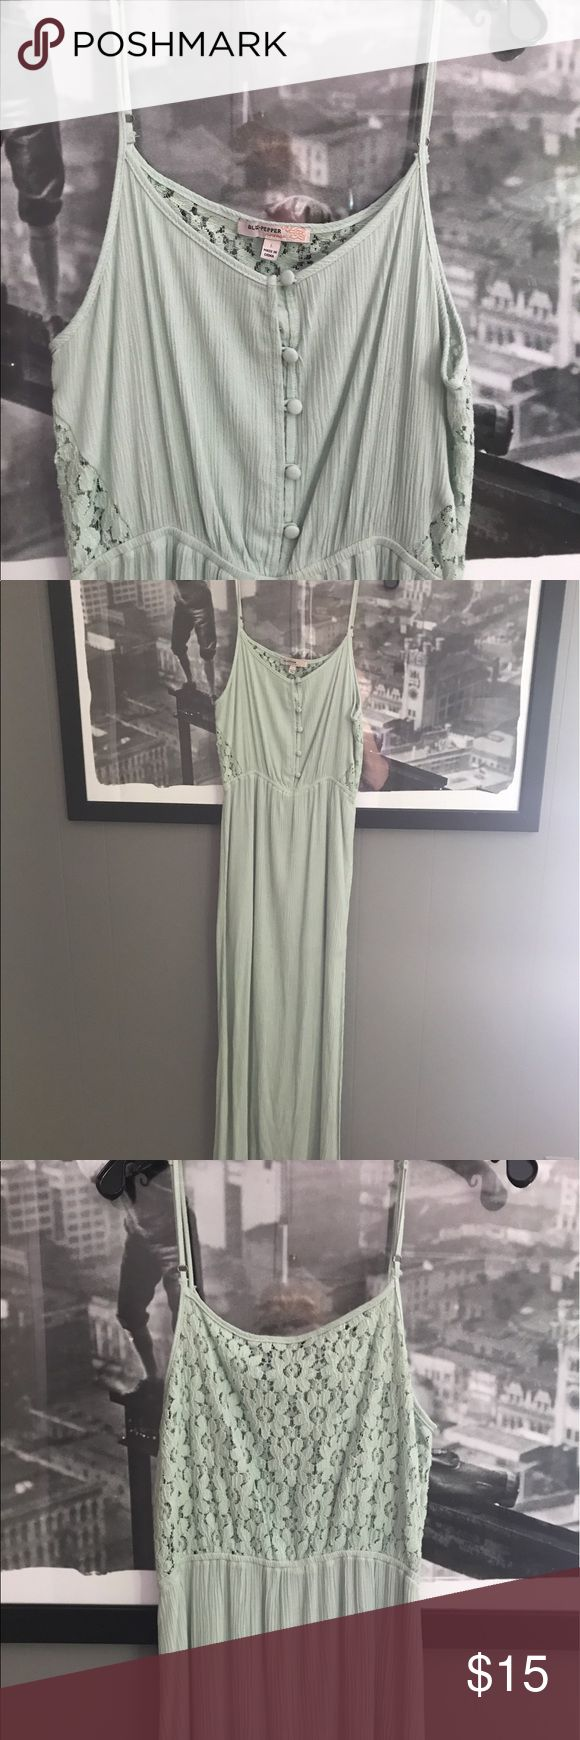 Mint Maxi Dress Never worn. Button down top and lace/crochet back. Blu Pepper Dresses Maxi